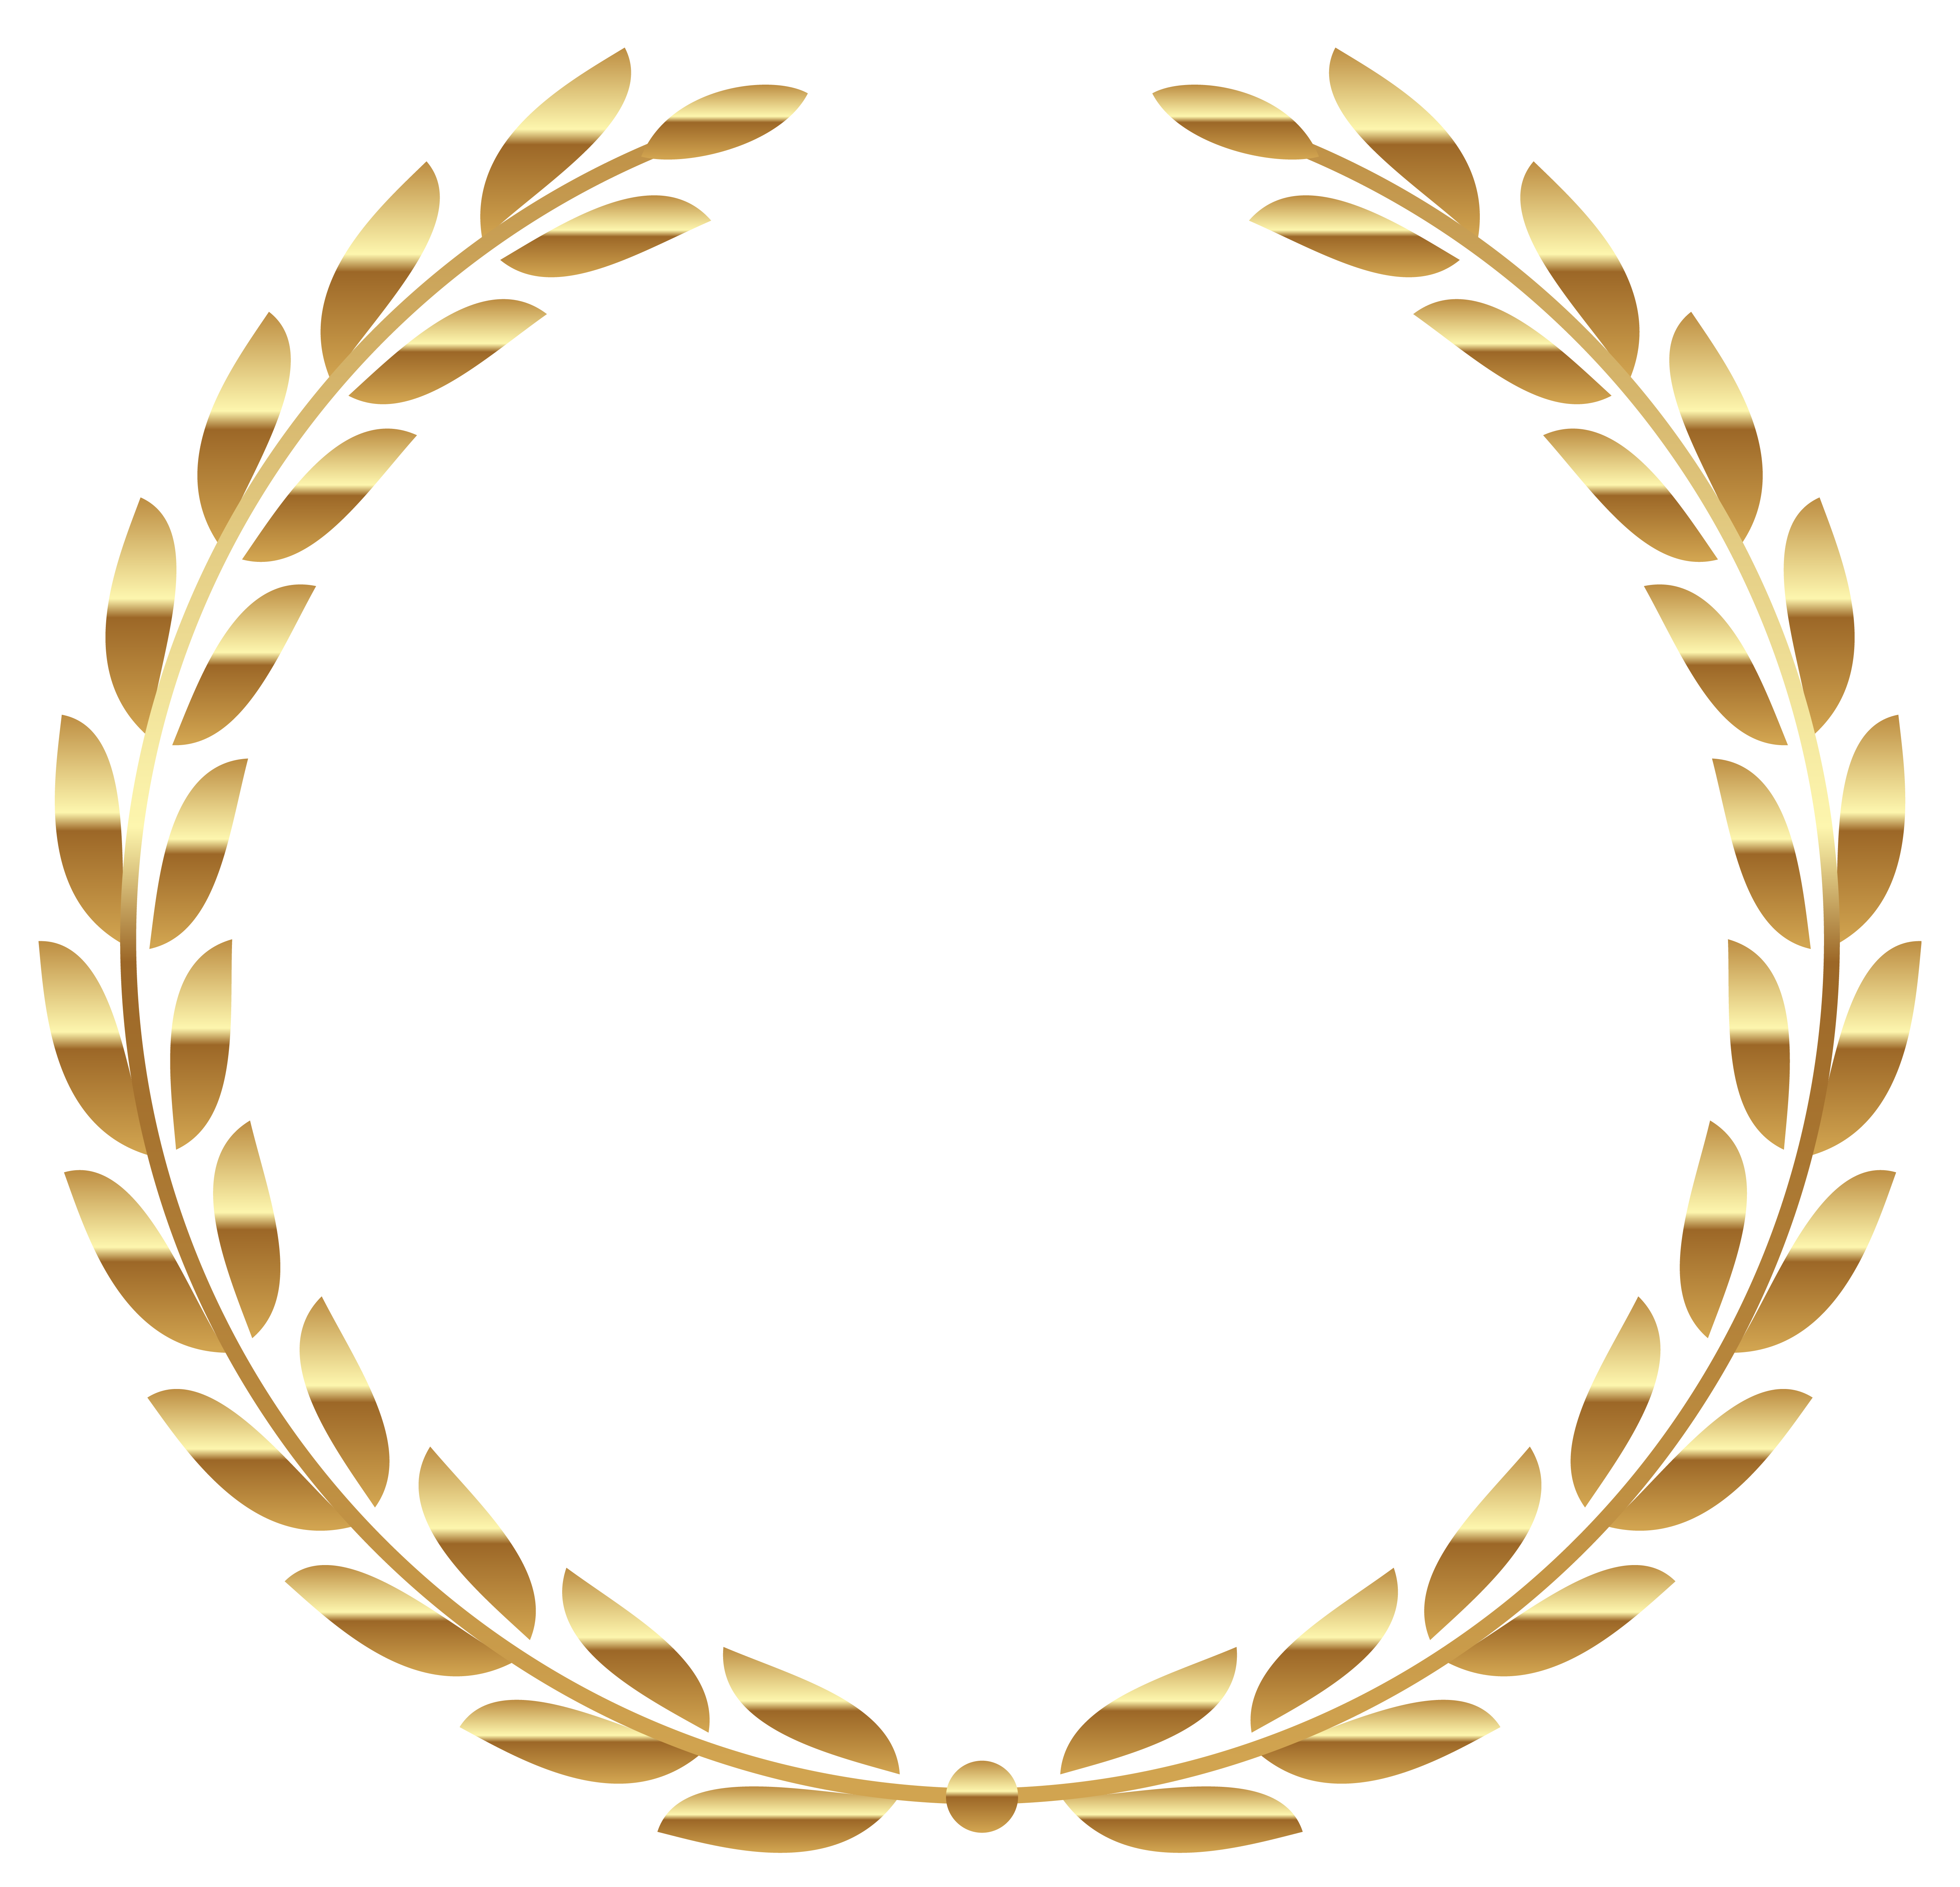 Transparent Gold Wreath PNG Clipart Picture.